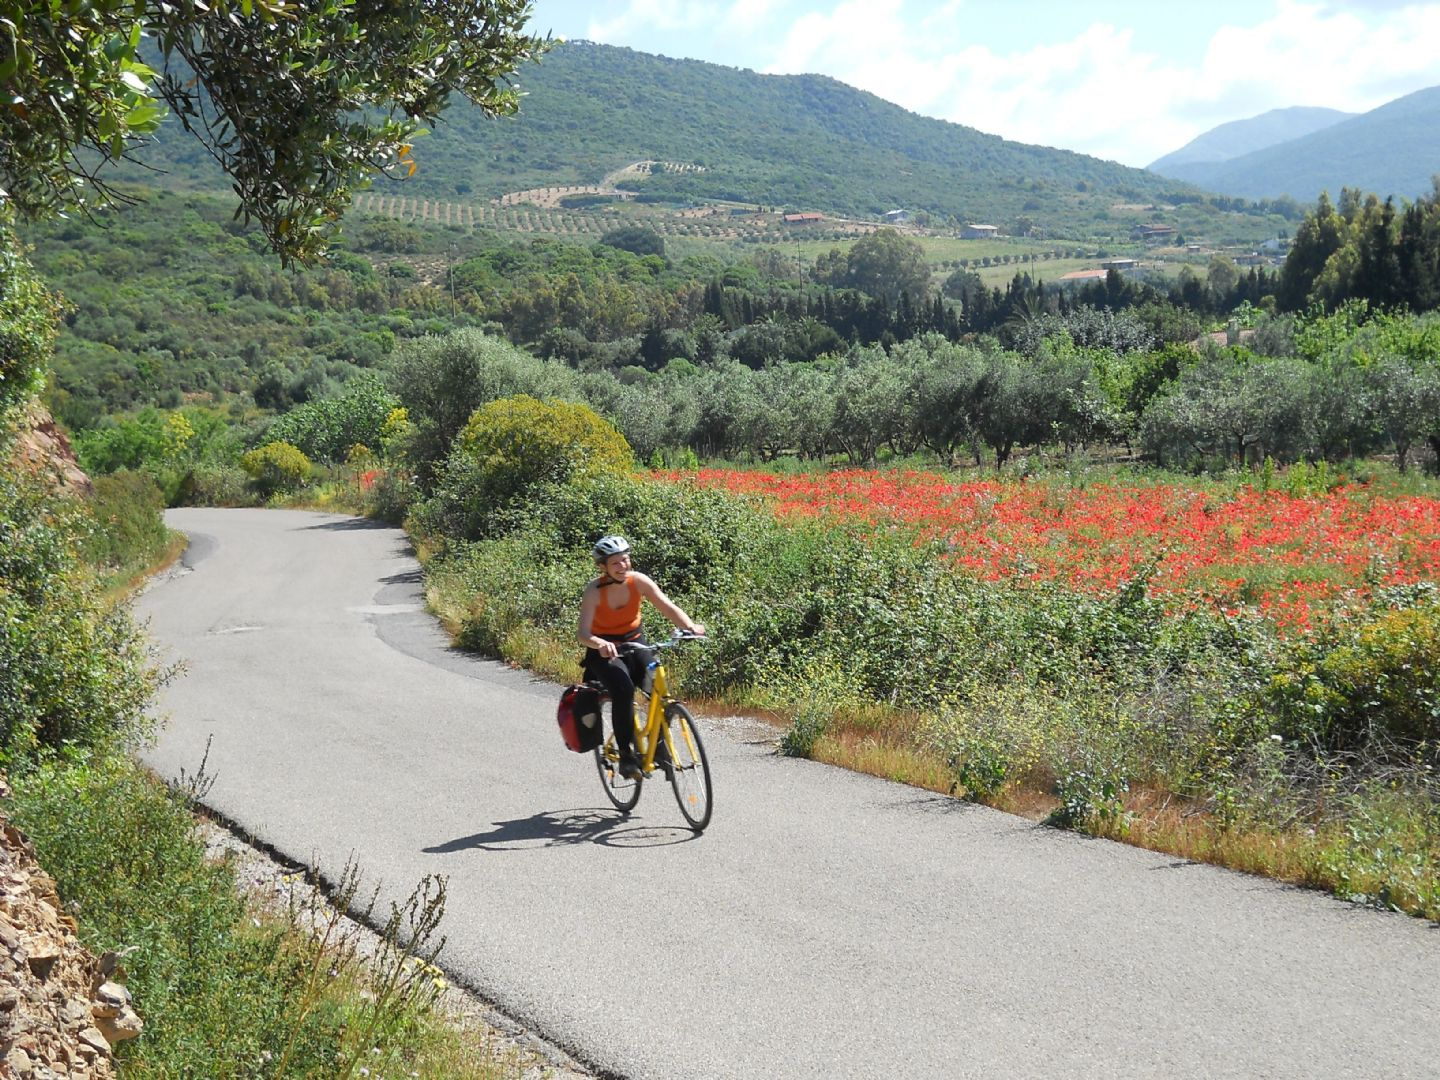 BITAS 009.jpg - Italy - Piemonte - Vineyards and Castles - Leisure Cycling Holiday - Guided - Italia Leisure and Family Cycling